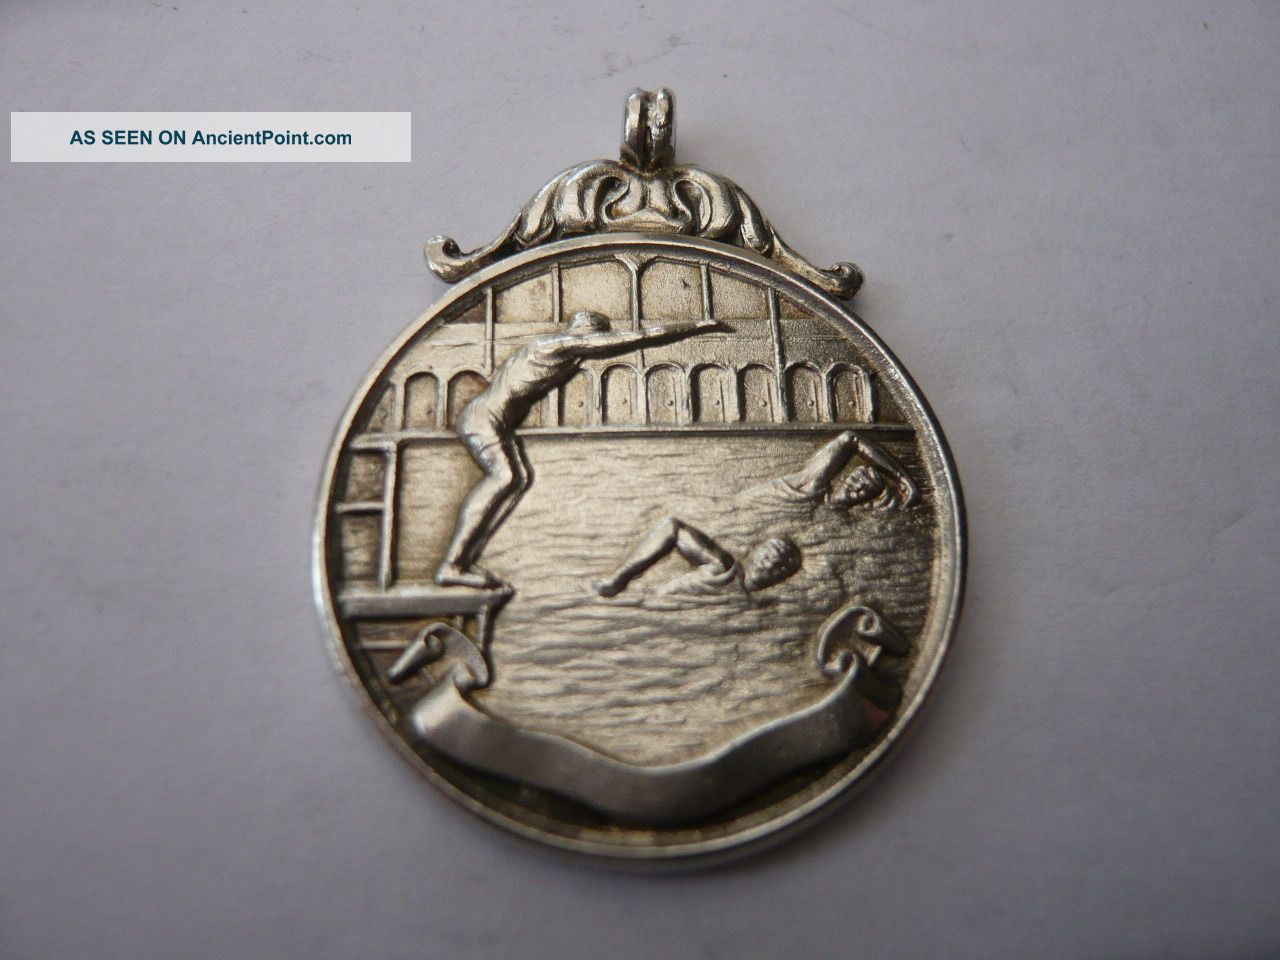 Good Vintage Silver Pocket Watch Chain Fob Medal Swimming Hms Valhalla 1920,  S Pocket Watches/ Chains/ Fobs photo